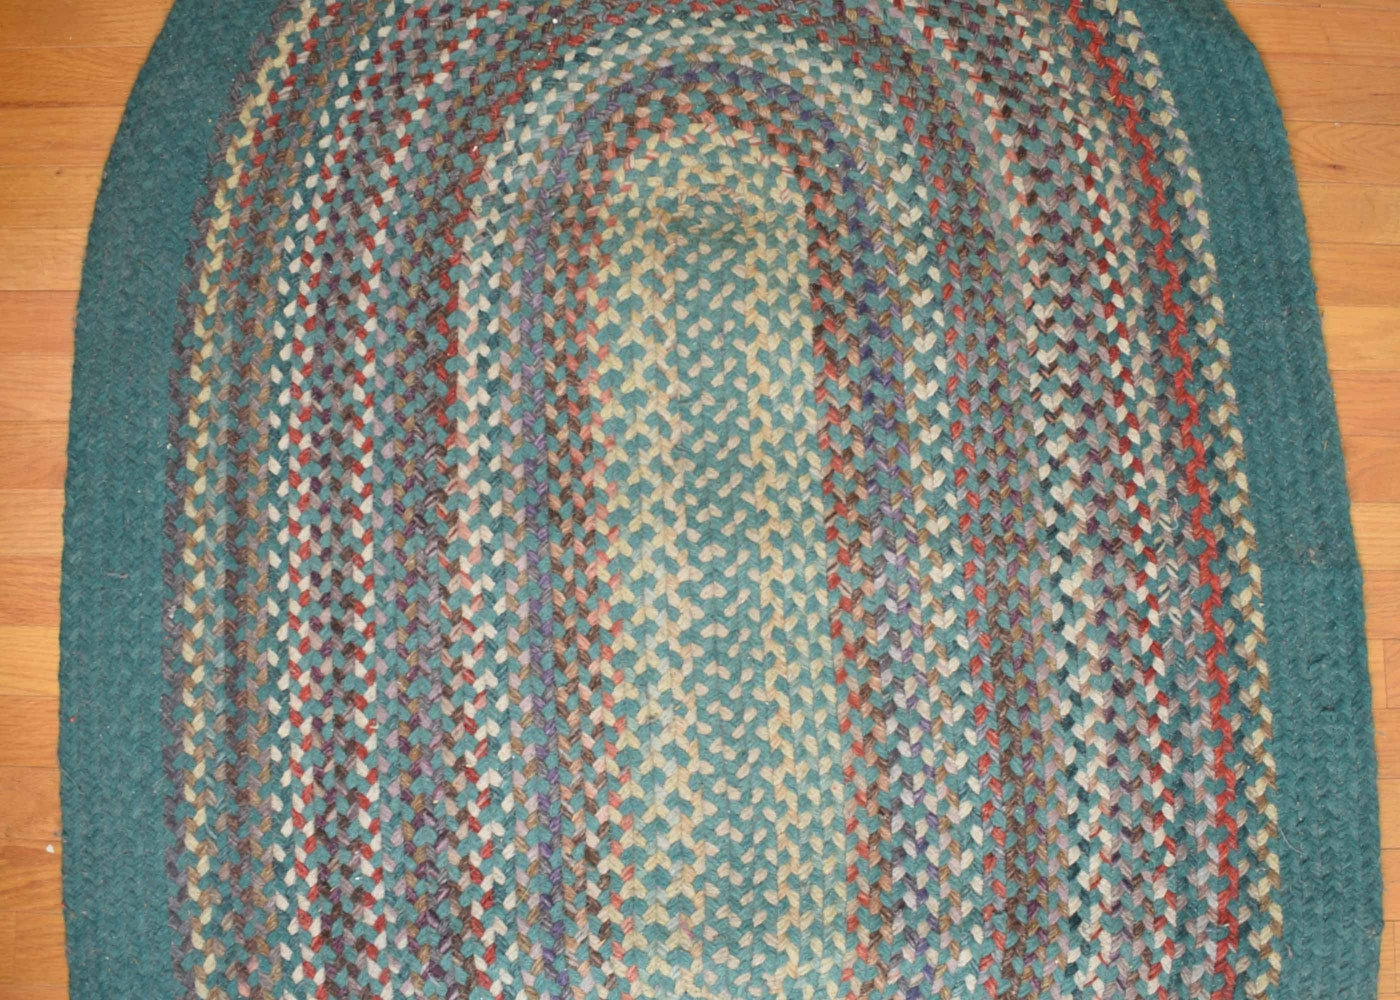 Capel Quot Cape Henry Quot Oval Braided Rug Ebth